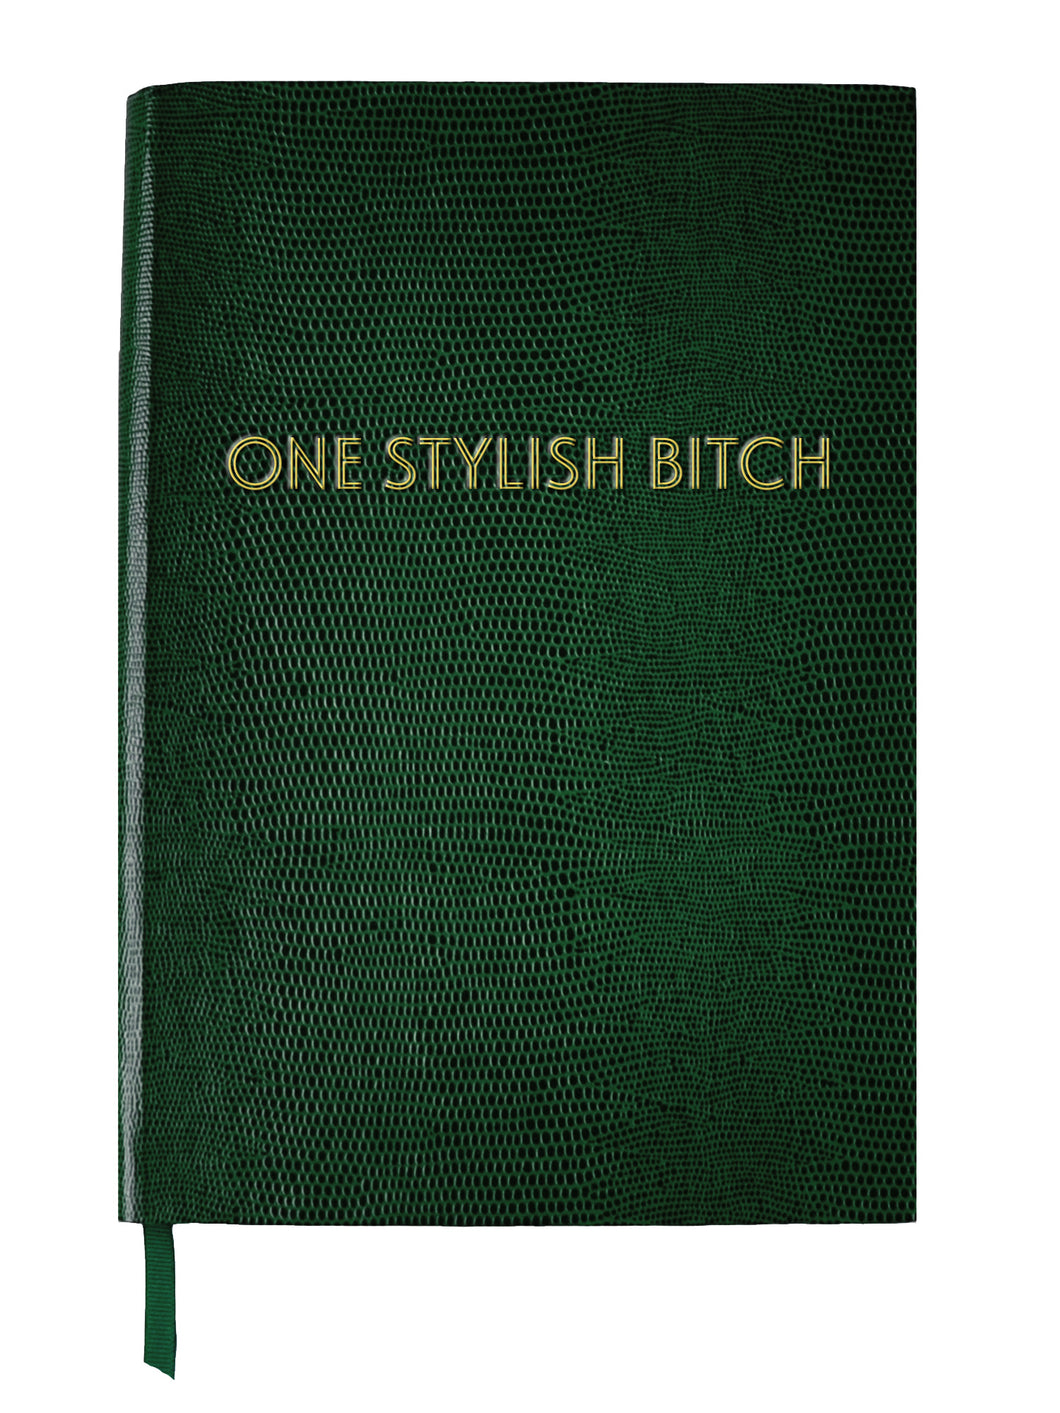 One Stylish Bitch Notebook